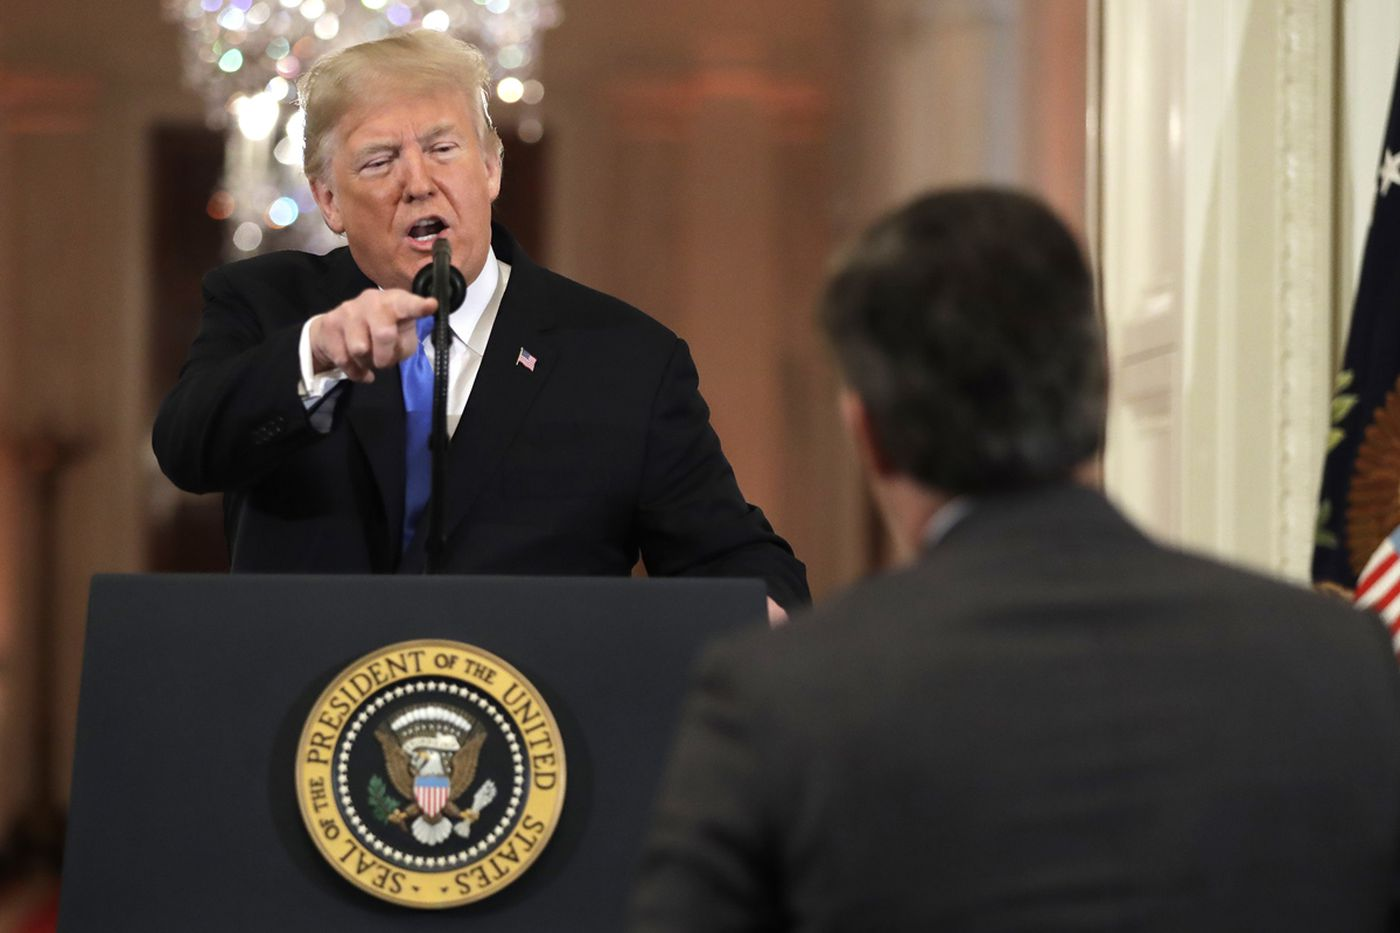 White House bans CNN reporter after confrontation with Pres